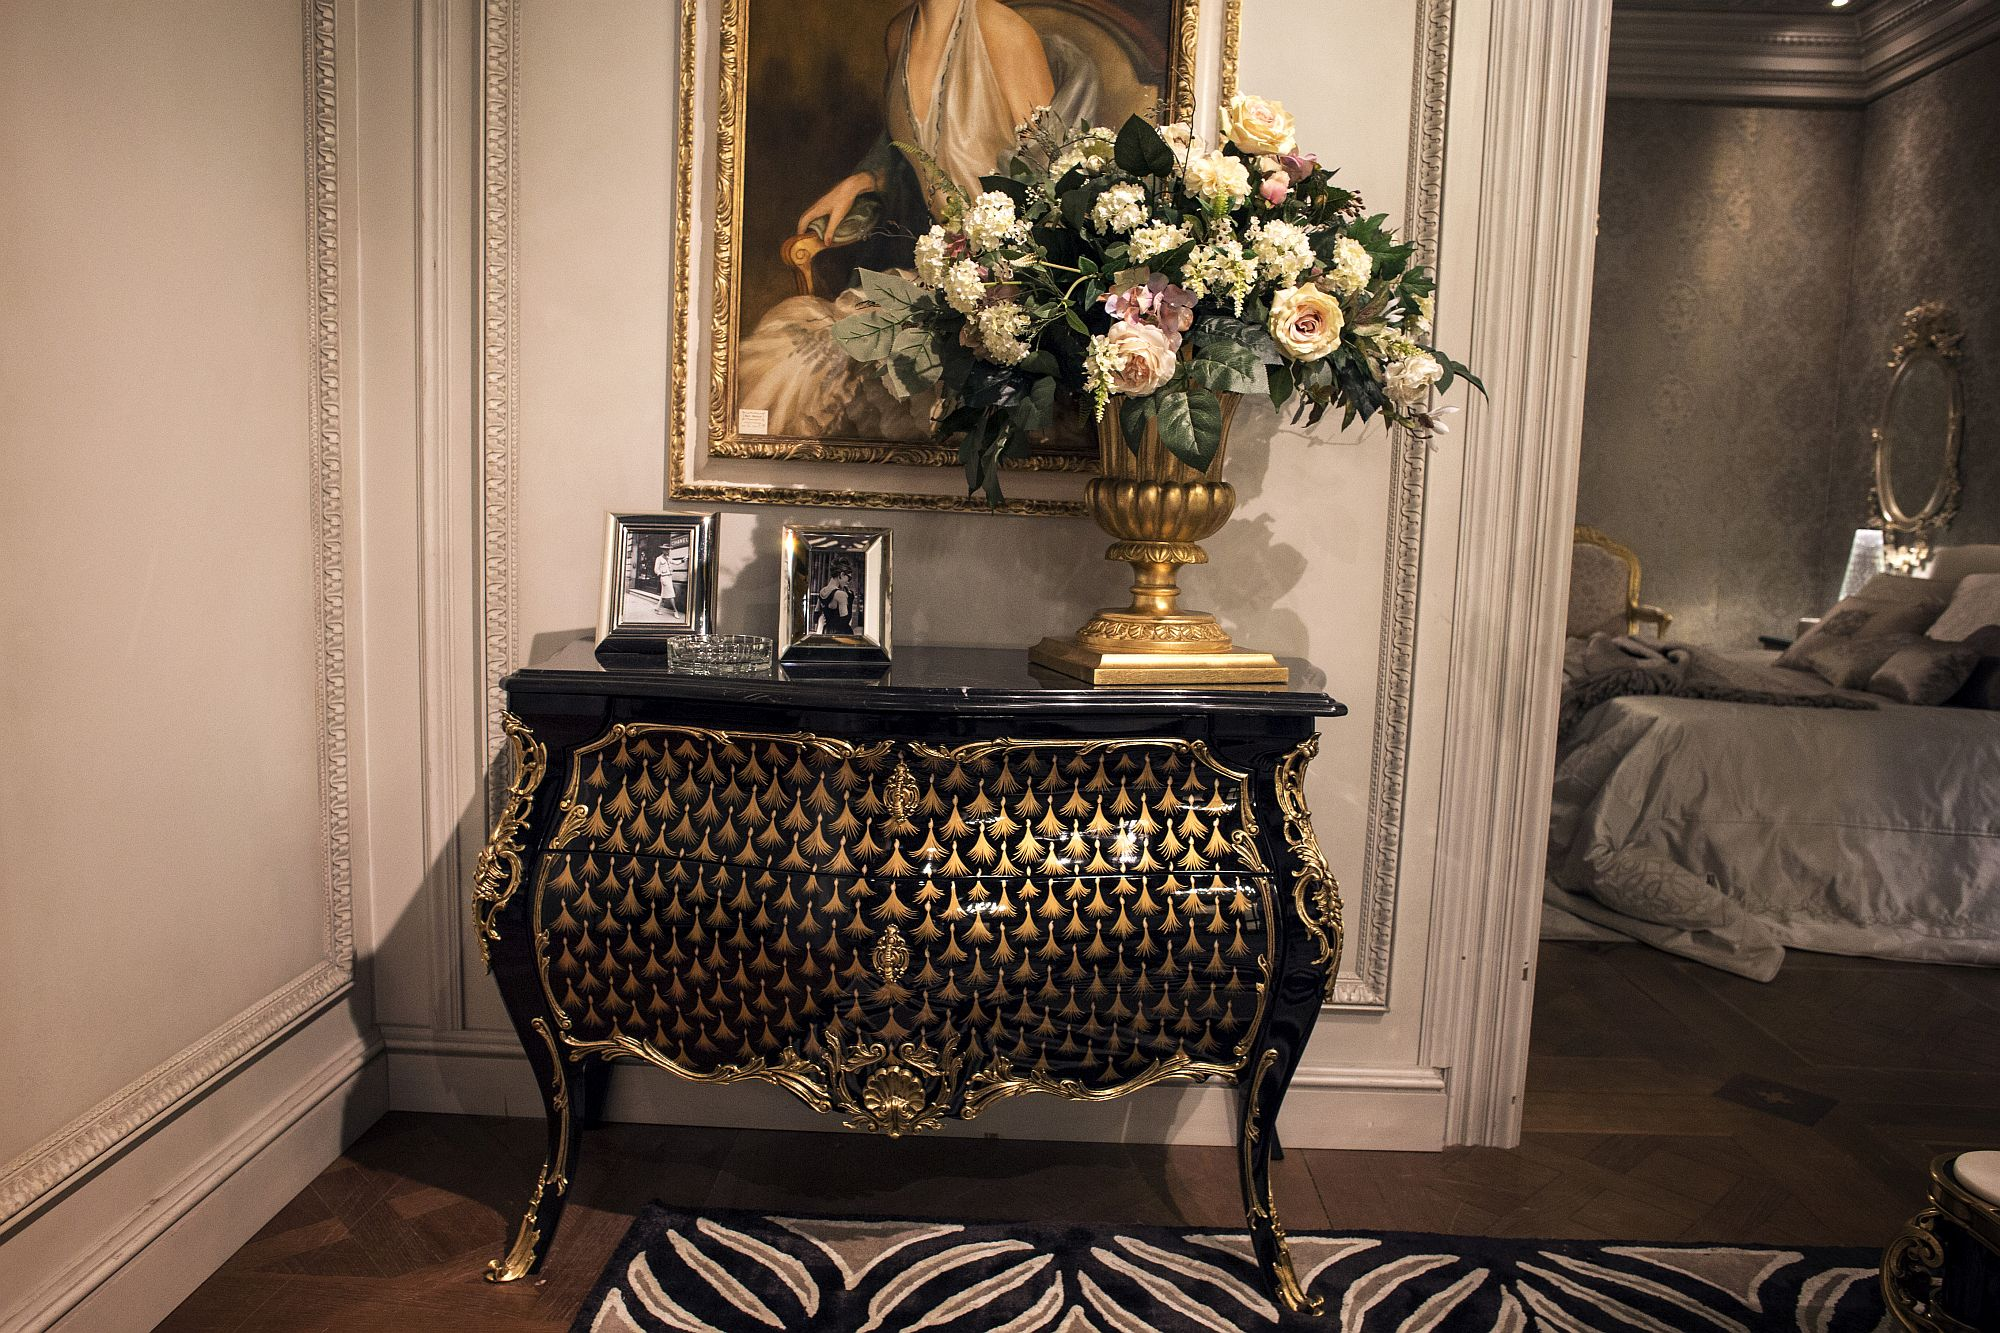 Classic entry console table in balck and gold decorated beautifully